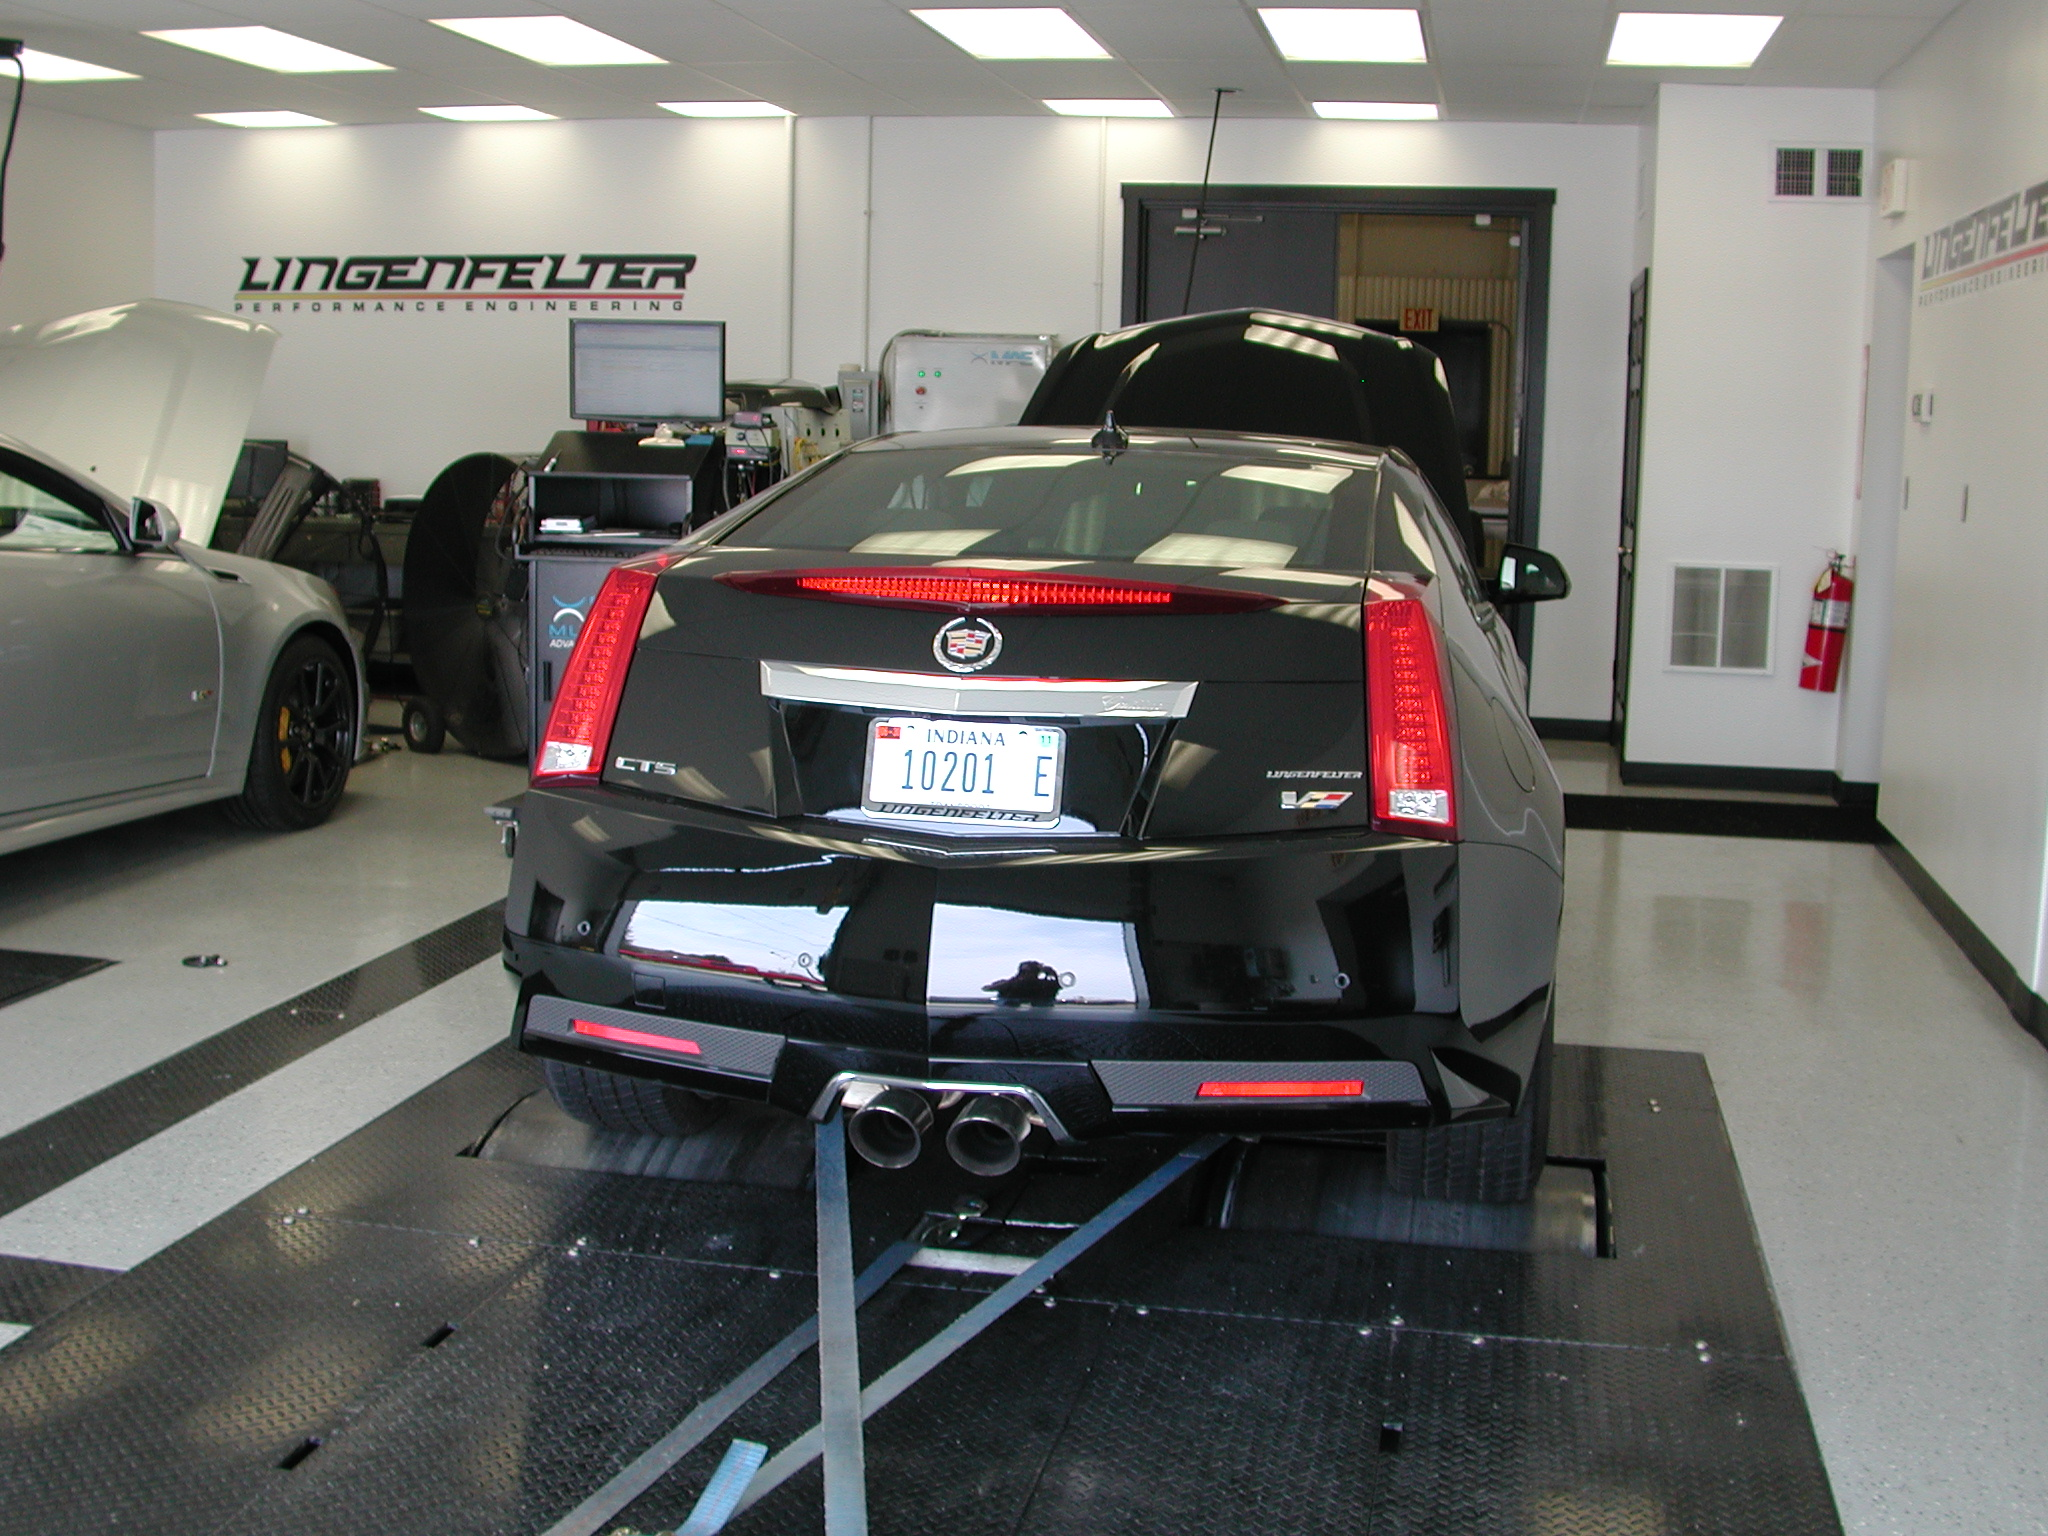 Cts Vs On Chassis Dyno Lingenfelter Performance Engineeering Fuel Filter Lpe Gt9 Camshaft And Supercharger Upper Pulley Kit 10 Overdrive Harmonic Balancer 63 Lbs Per Hour Injects K N Air 160 Thermostat